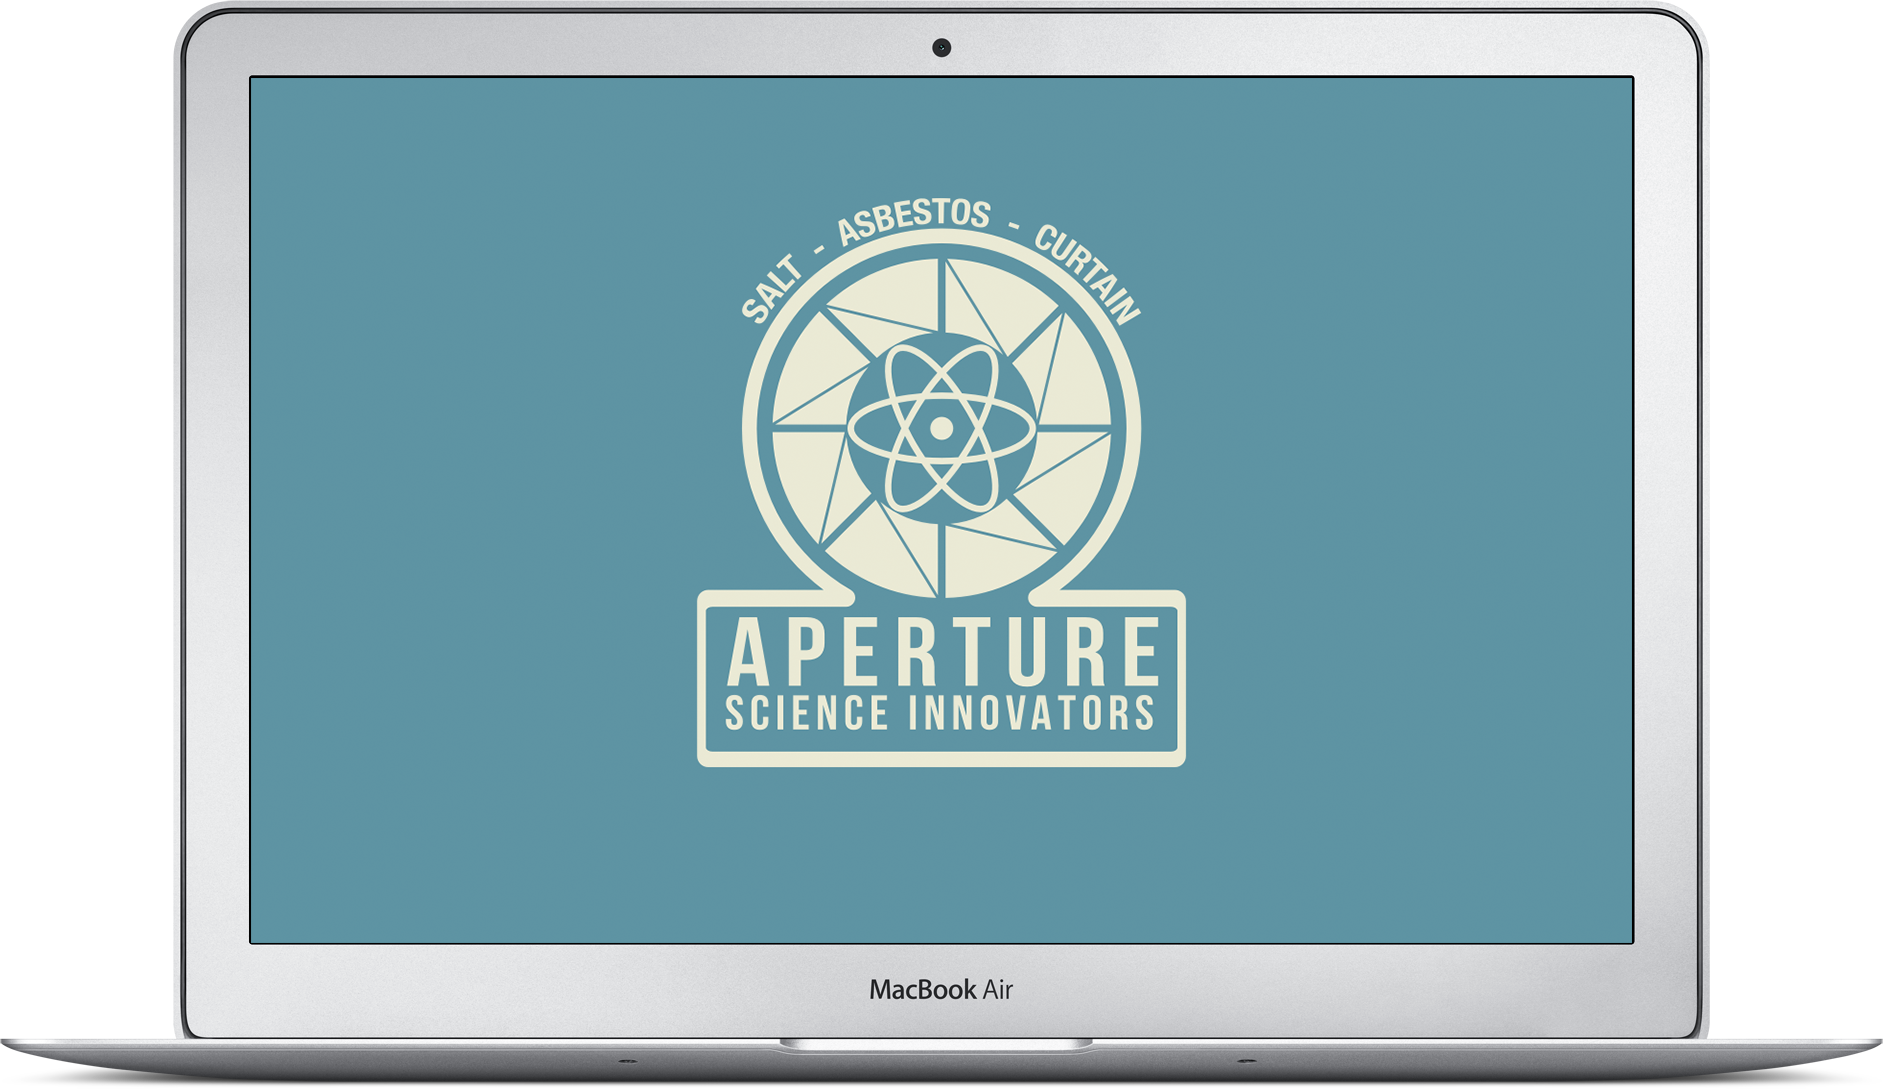 Aperture Science Innovators Wallpaper 2 by Bogun99 on ...Aperture Science Innovators Wallpaper